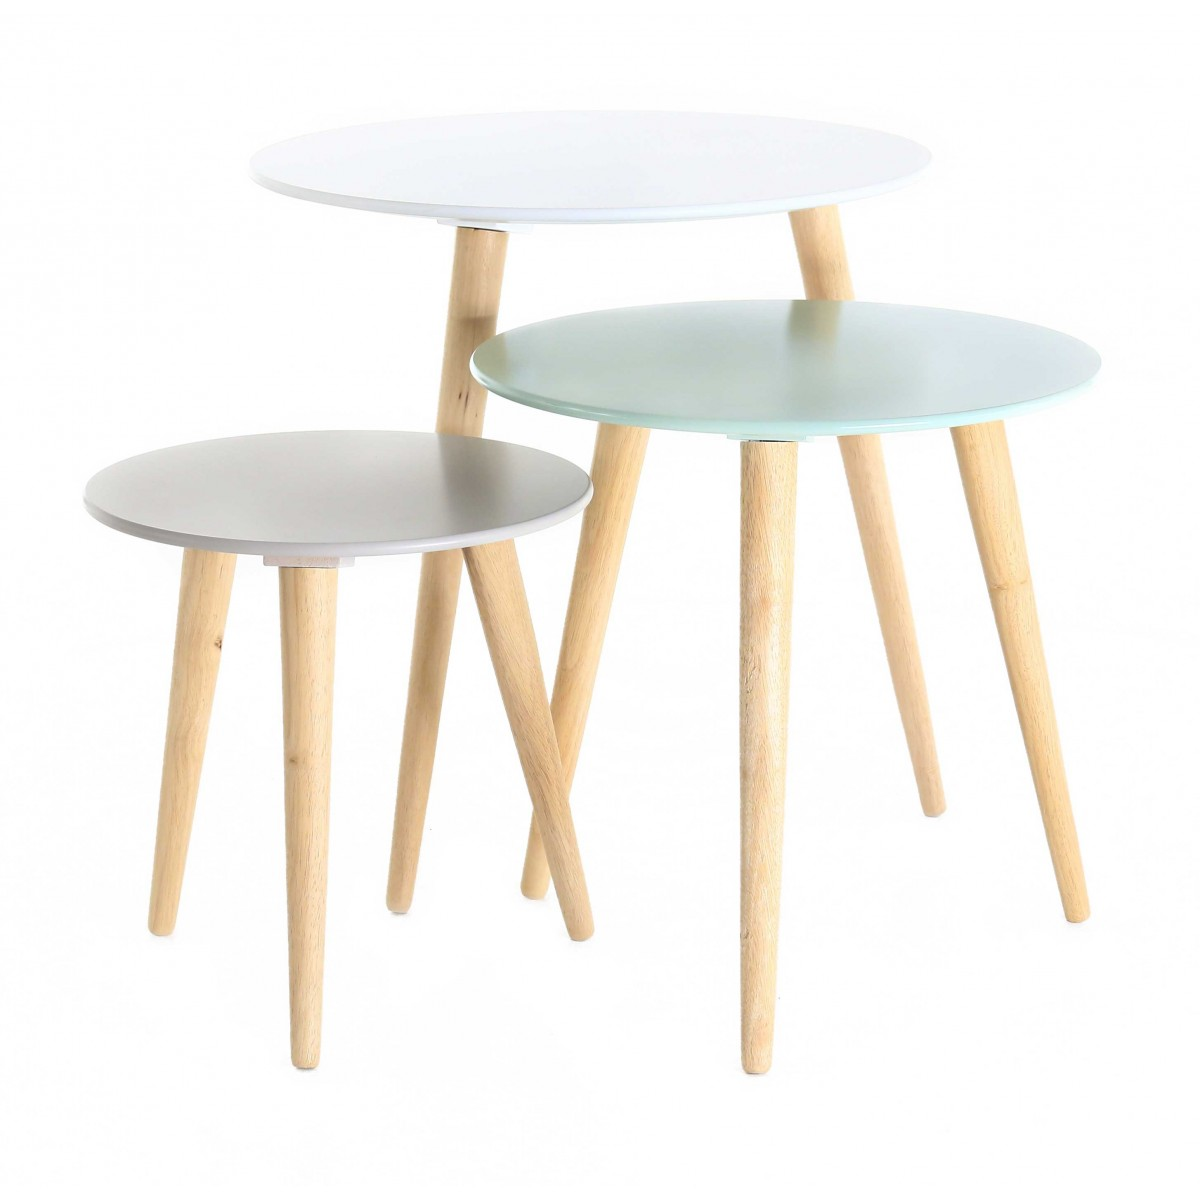 Set de 3 tables gigognes rondes scandinaves mooviin for Table scandinave blanc et bois